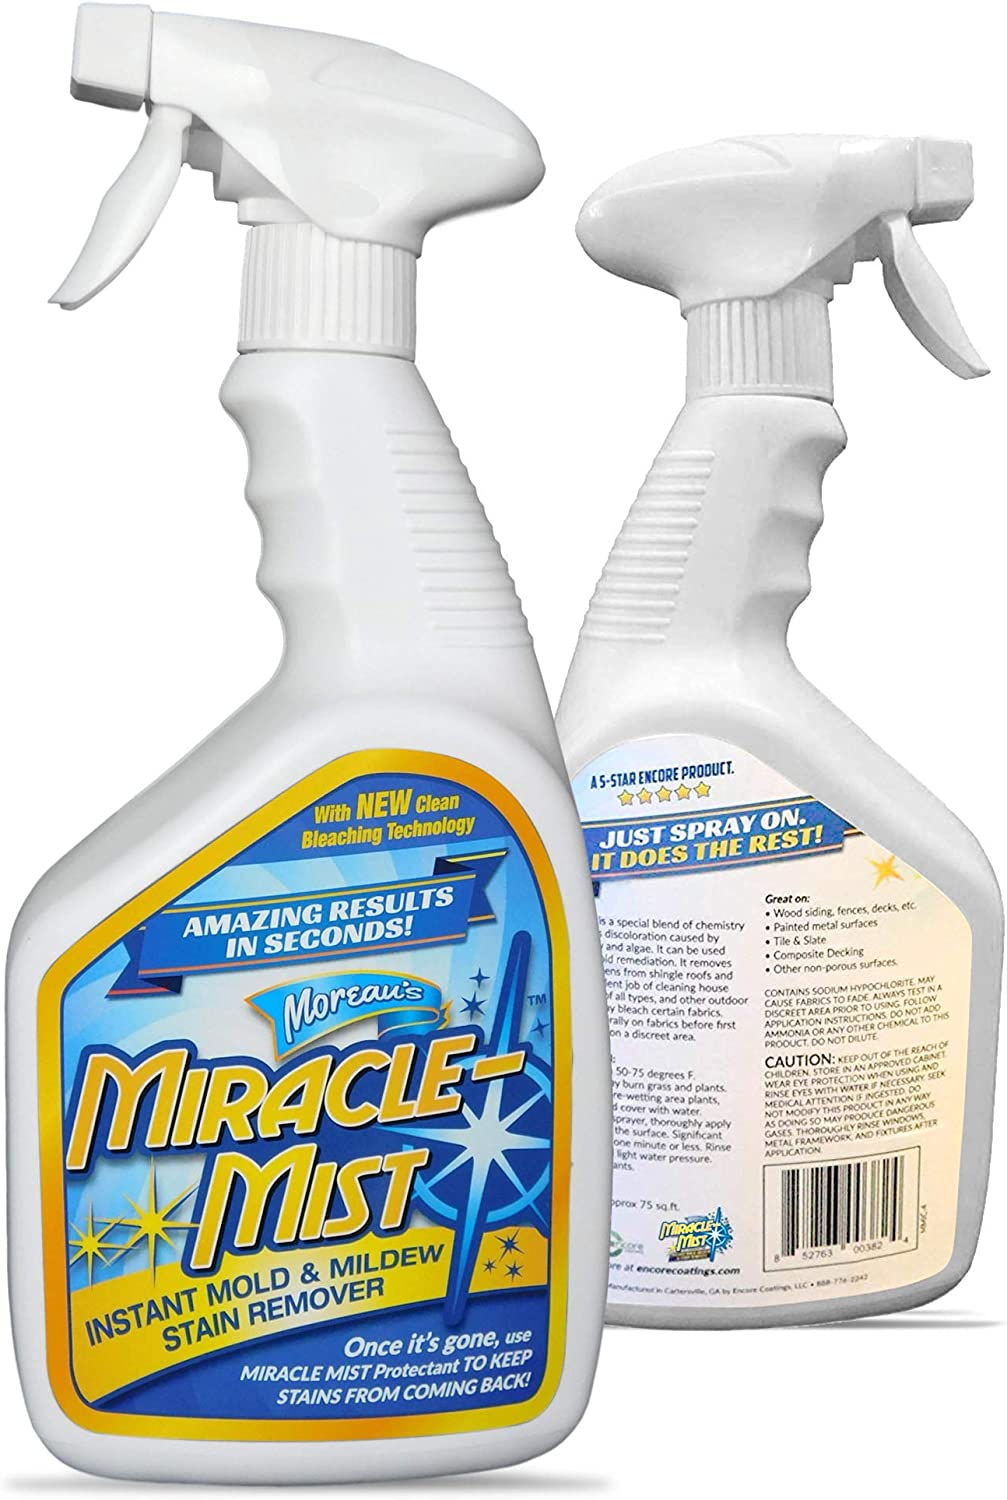 MiracleMist Long Term Protectant for Indoor and Outdoor Use, Long Lasting Bathroom, Boat, RV, Deck, Concrete, Vinyl + Title Protection from Mold, Mildew and Algae Stains, 32 oz